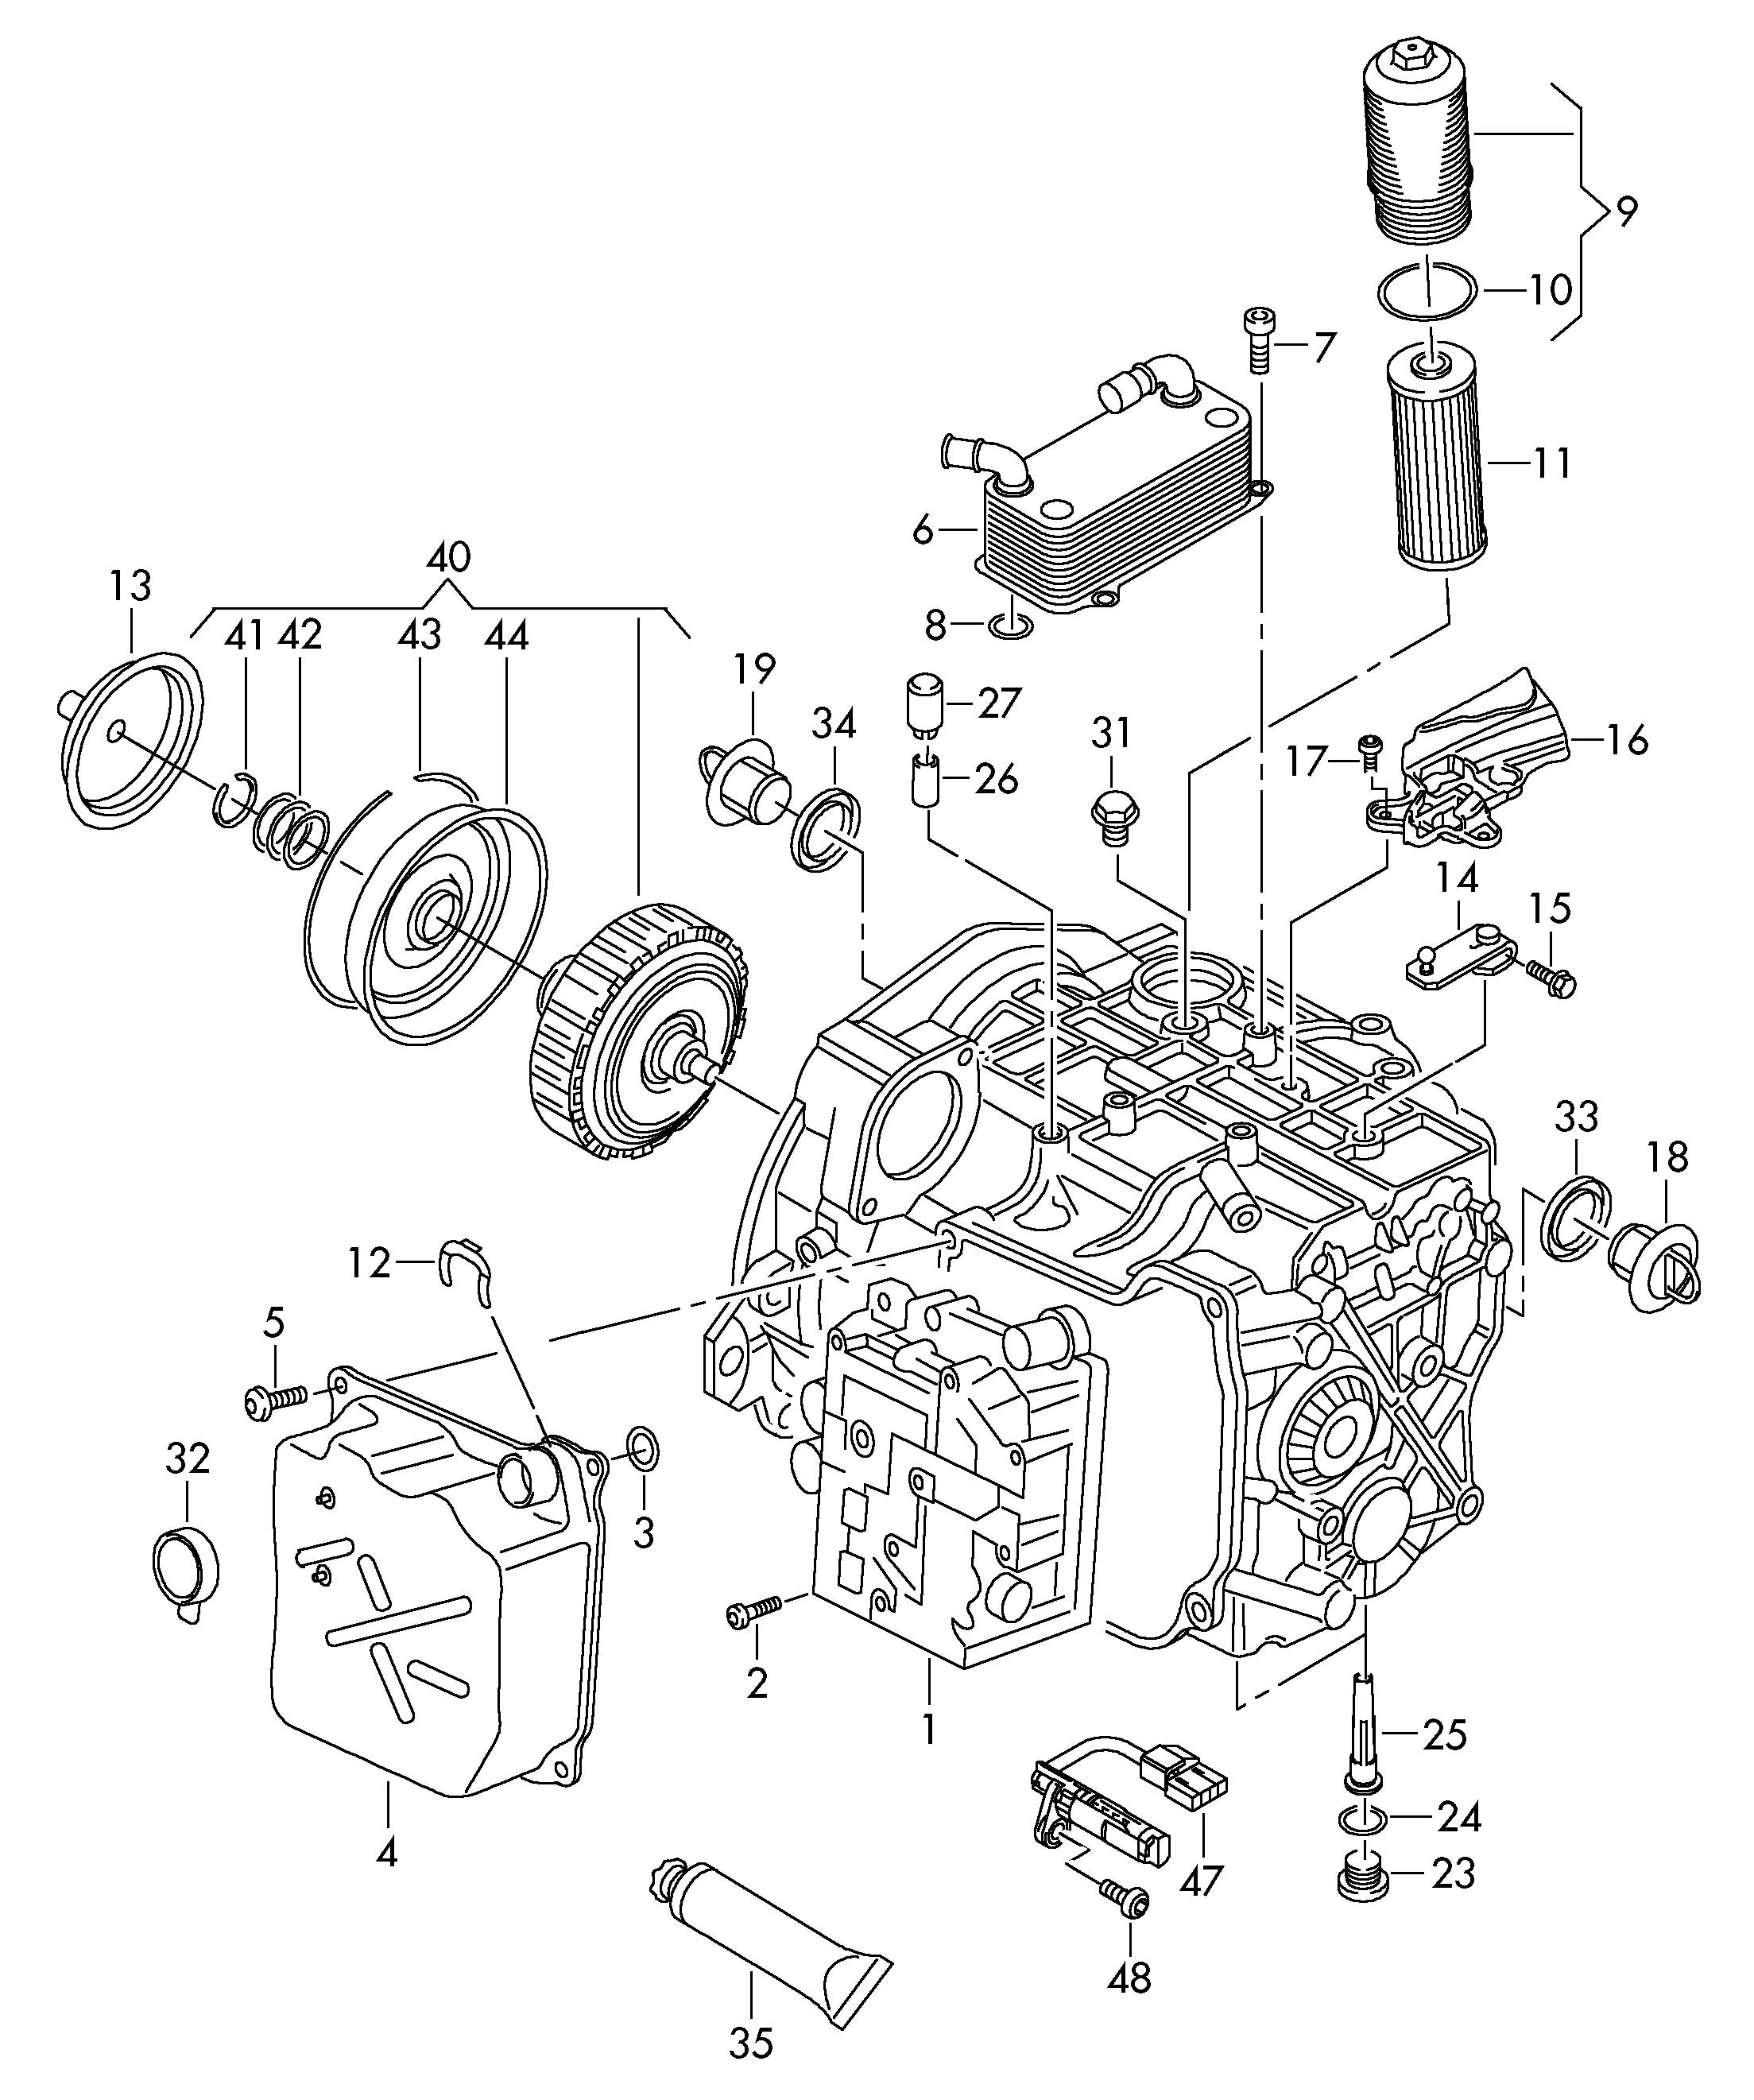 1970 Vw Ke Wiring Diagram. Diagram. Auto Wiring Diagram